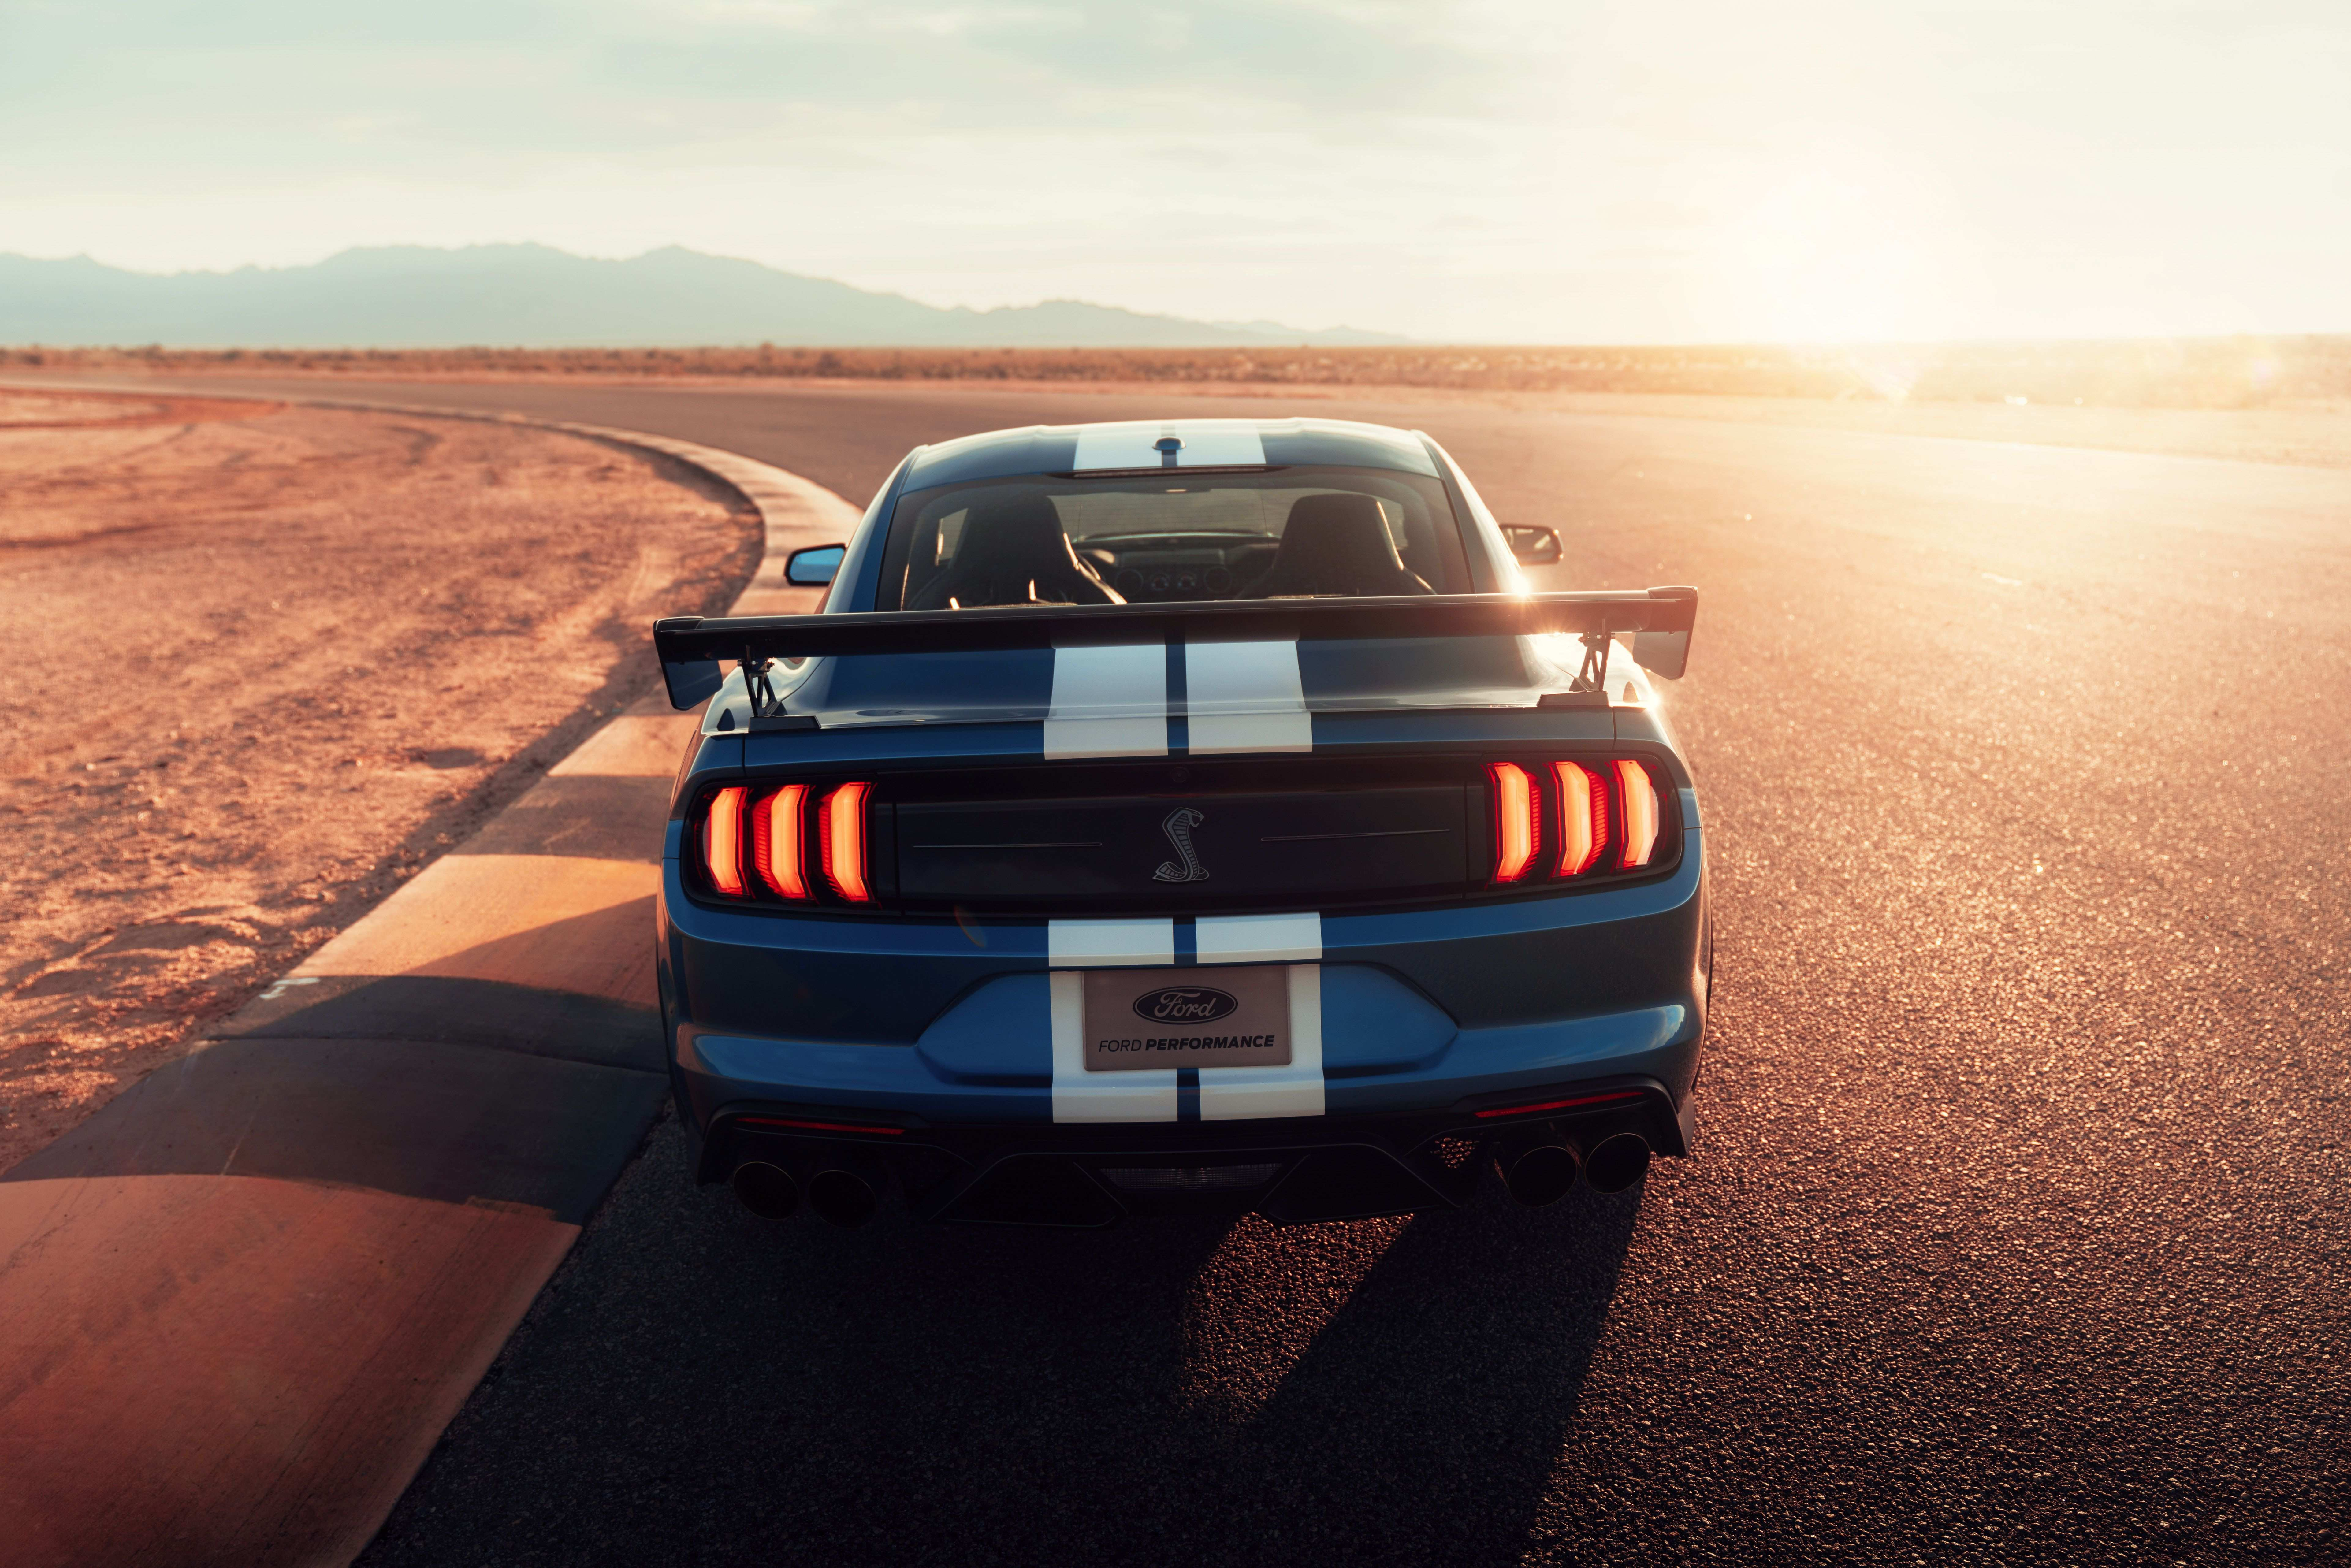 63 Best 2020 Ford Mustang Shelby Gt500 Release Date